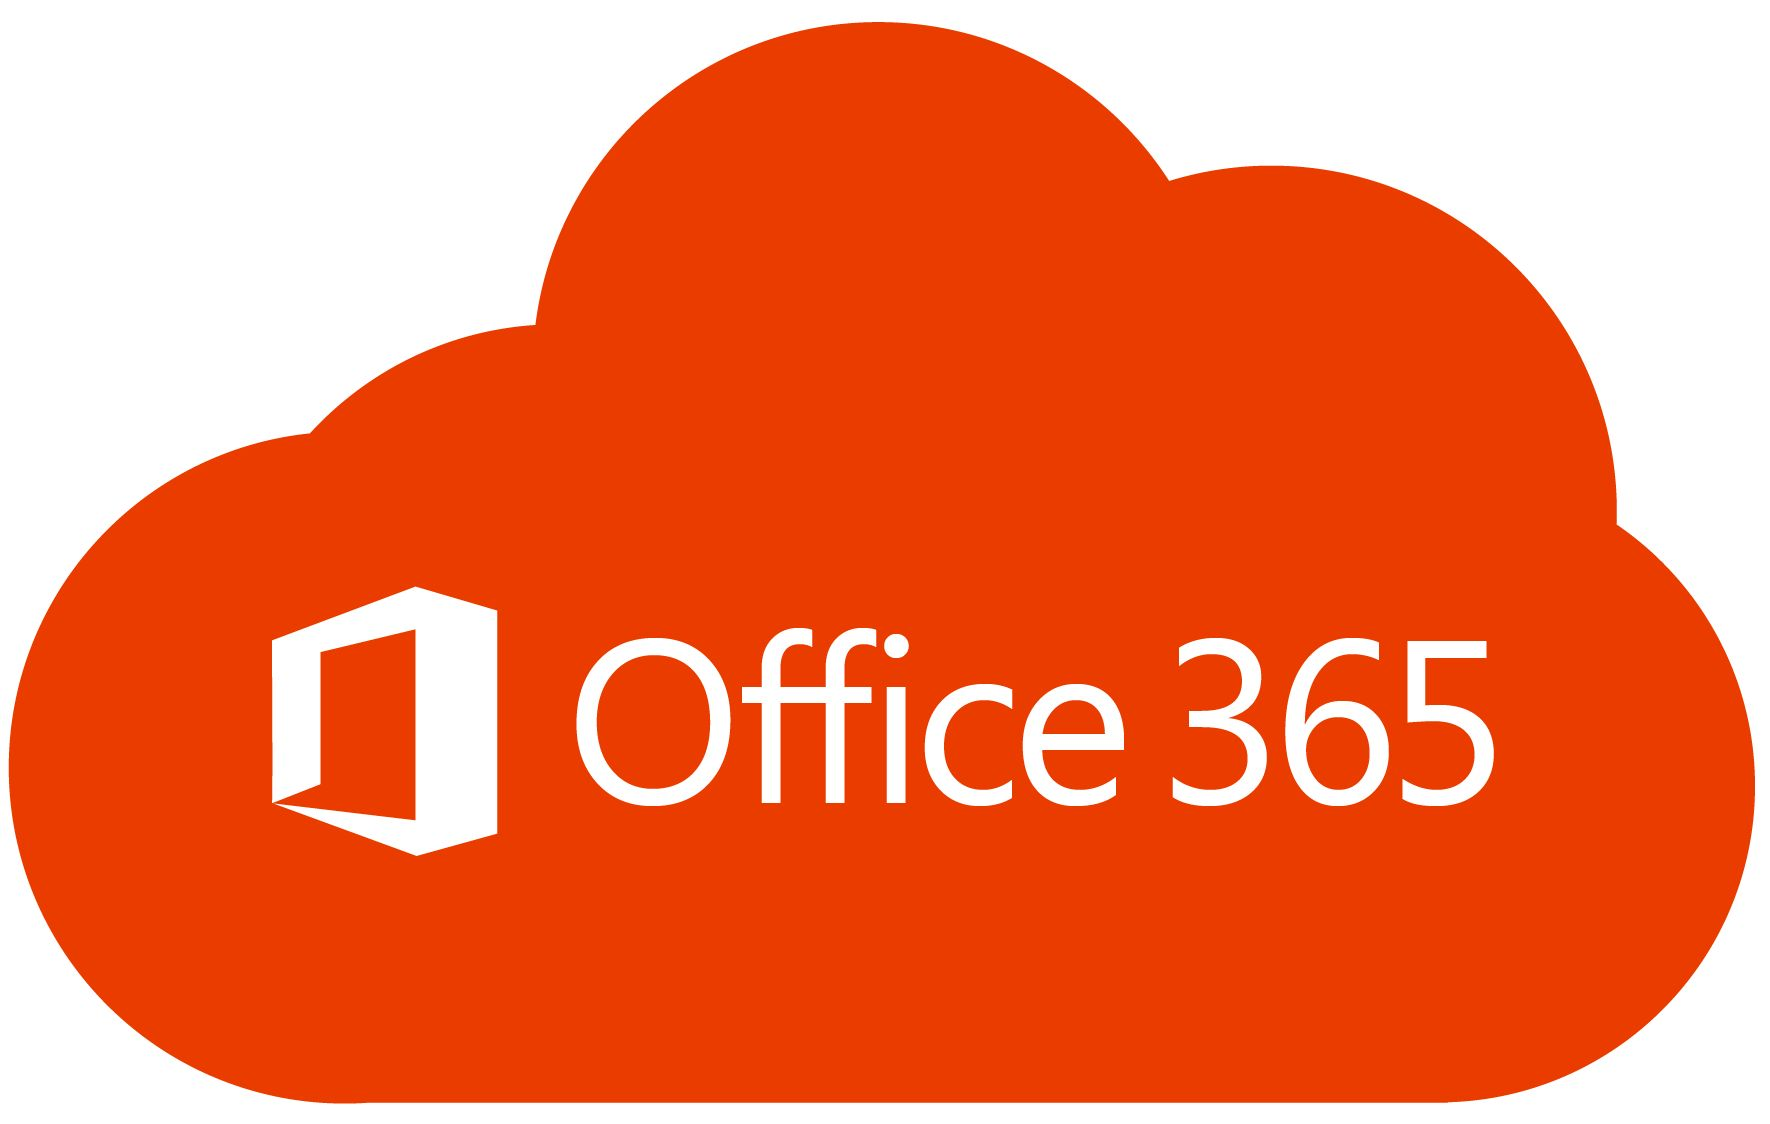 Office 365: Migration, Management, Consulting, and Deployment